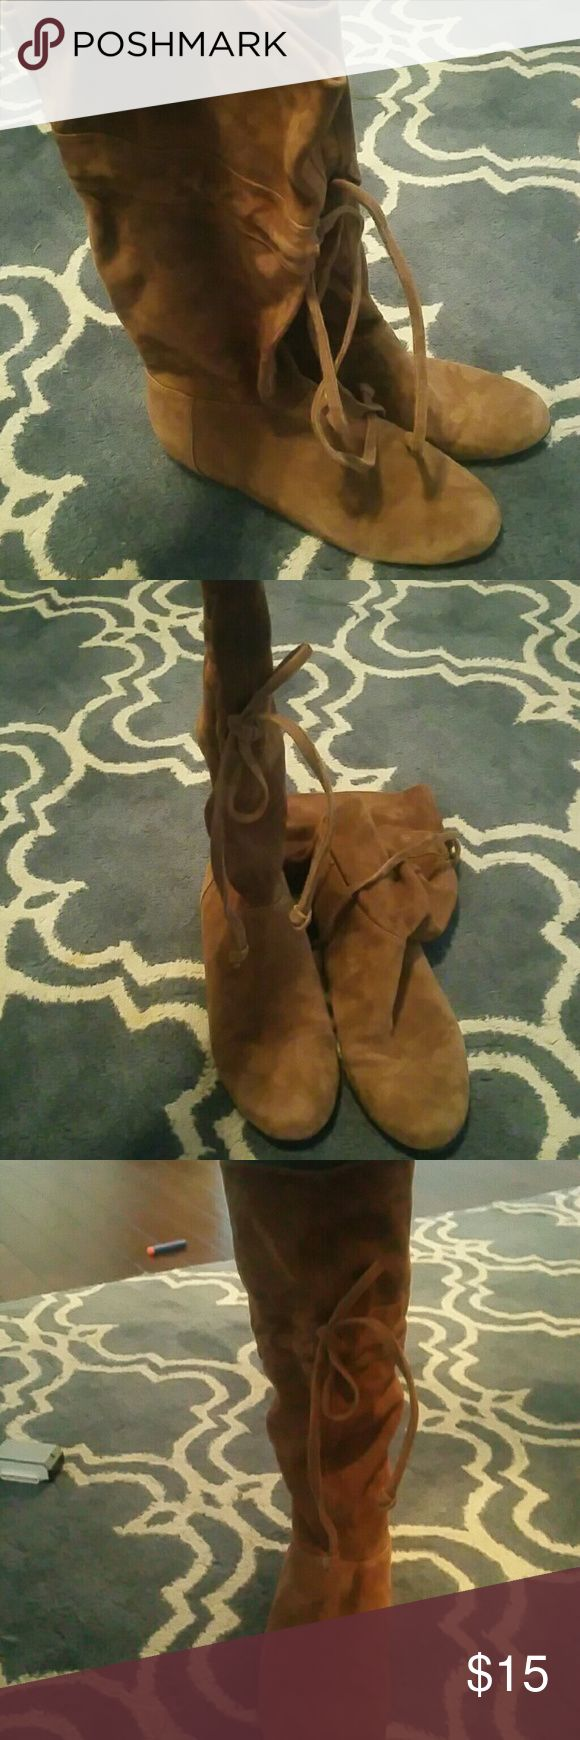 Nine west slouchy boots Size 8 slouchy brown suede boots tie right before the top help keep them up super cute on Nine West Shoes Ankle Boots & Booties